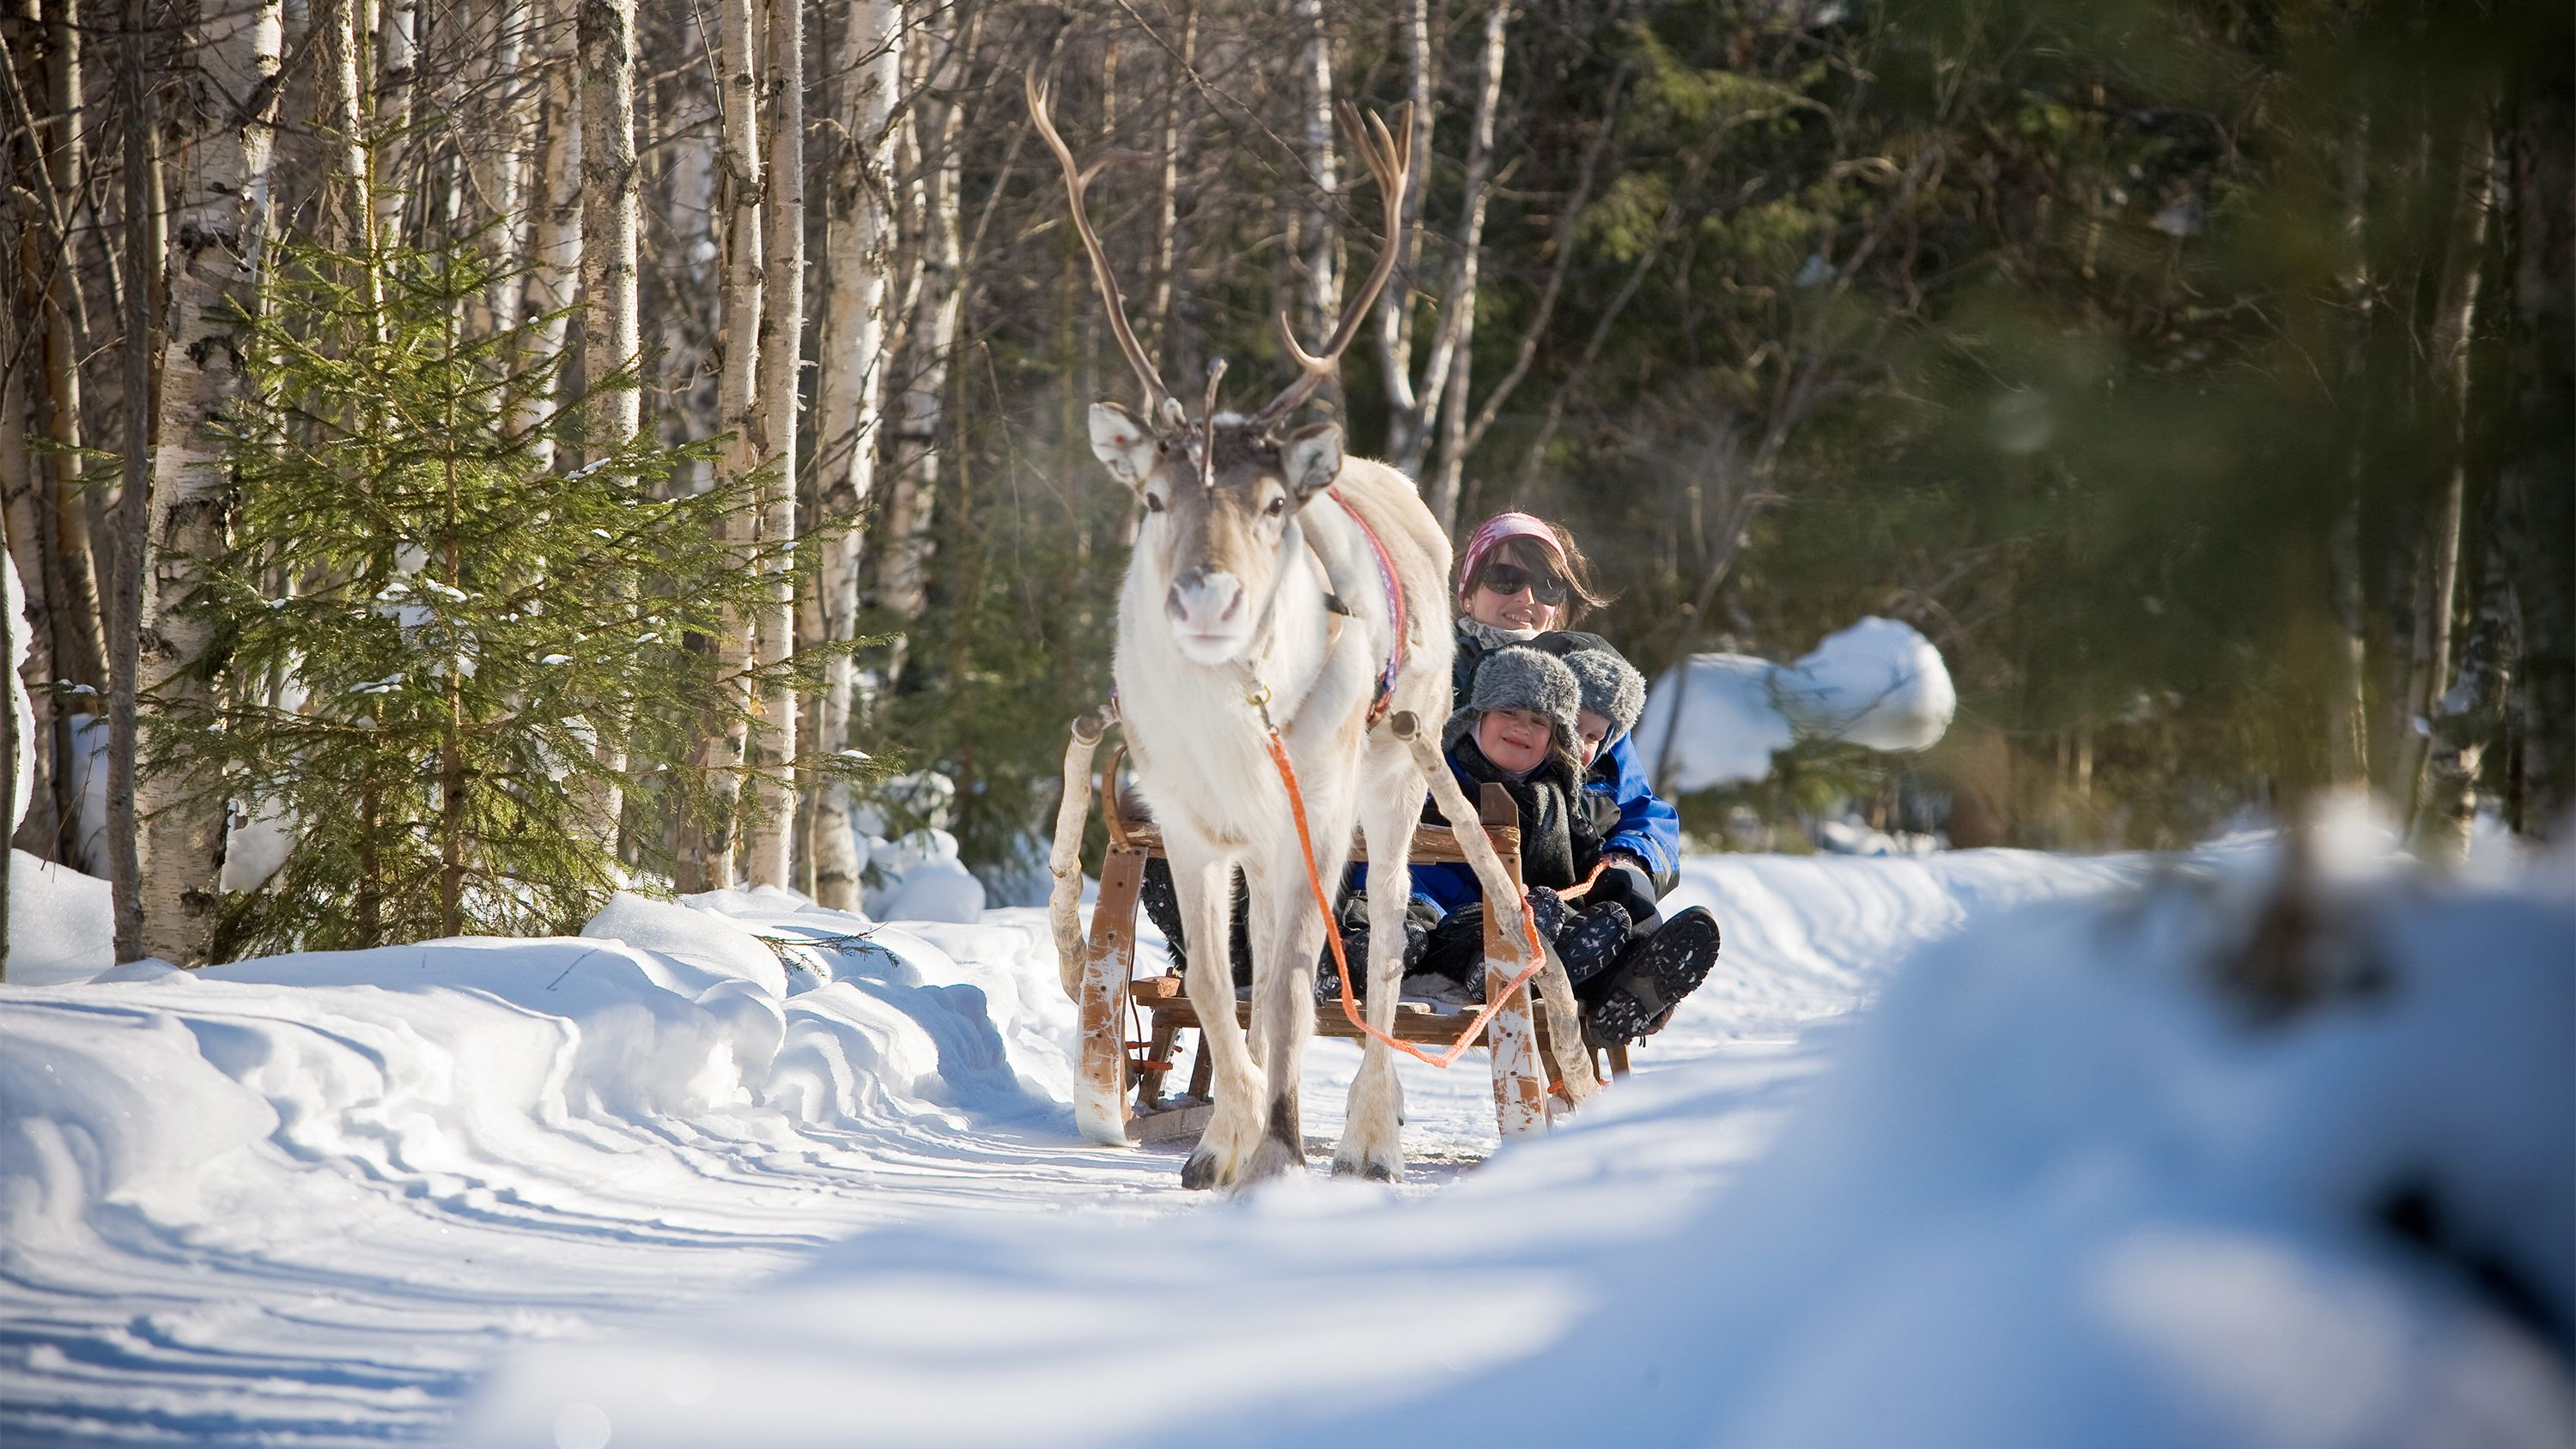 Family sledding with a reindeer in Lapland